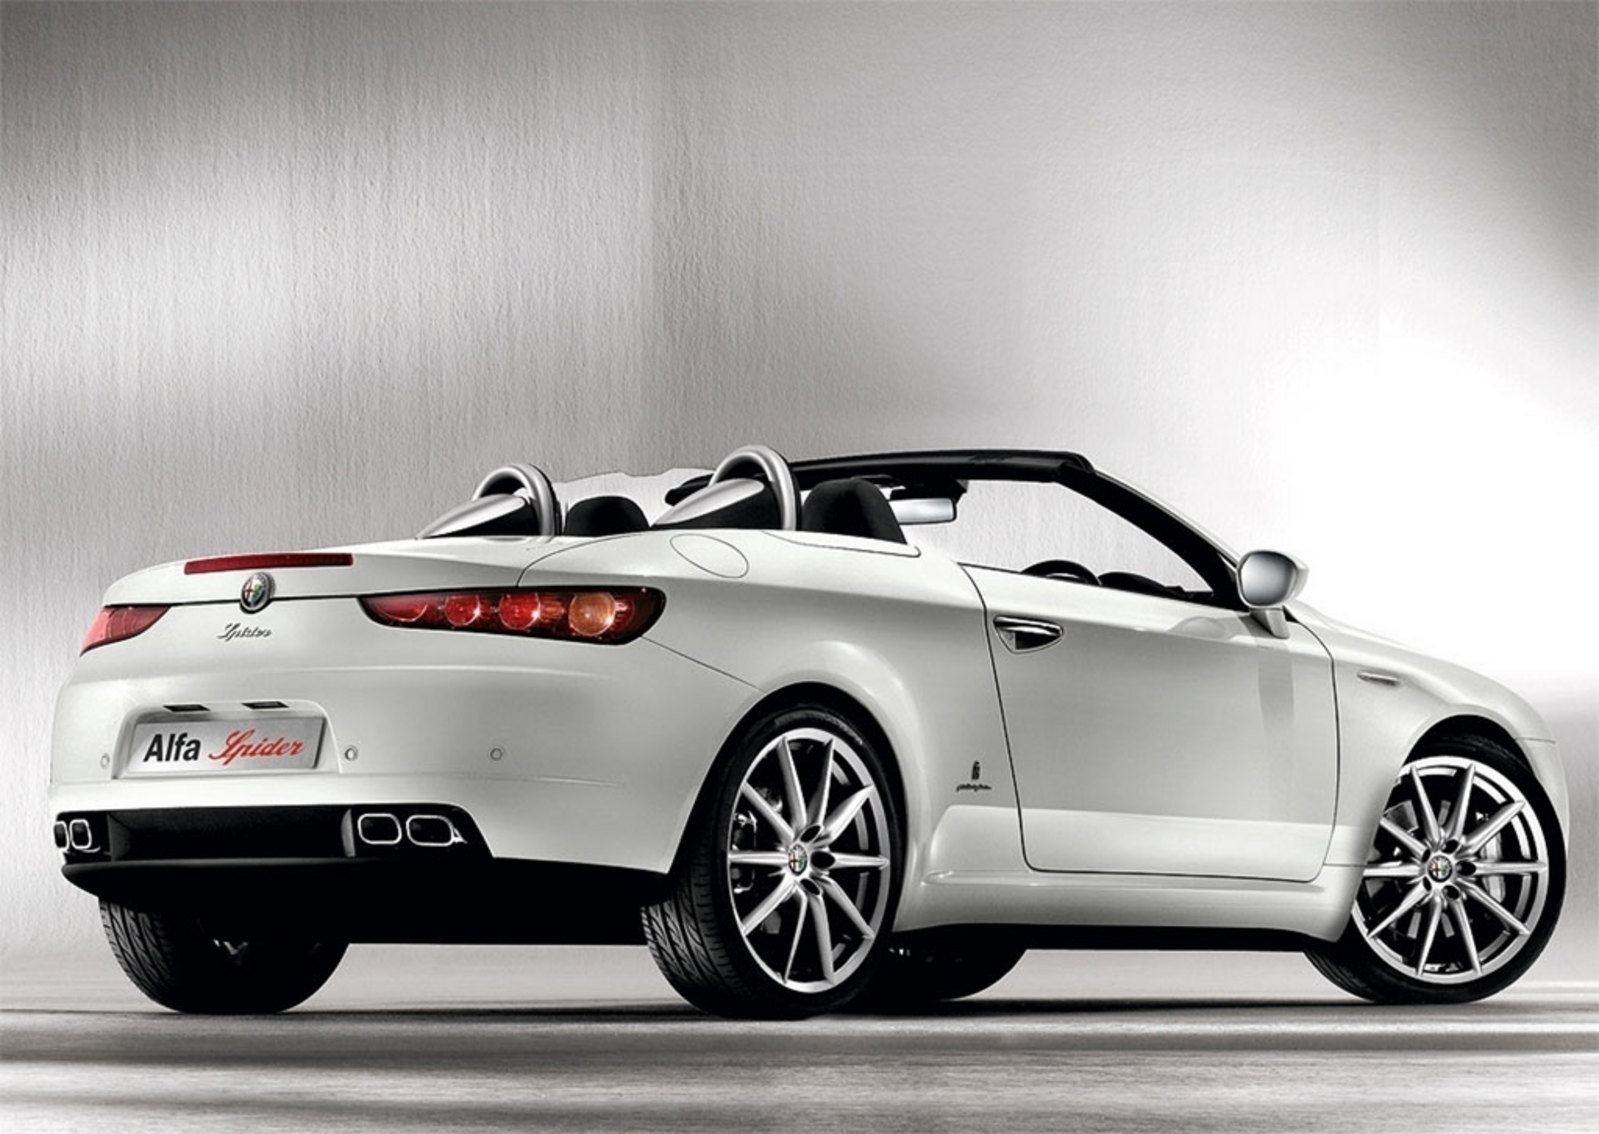 2008 Alfa Romeo Spider Limited Edition Review